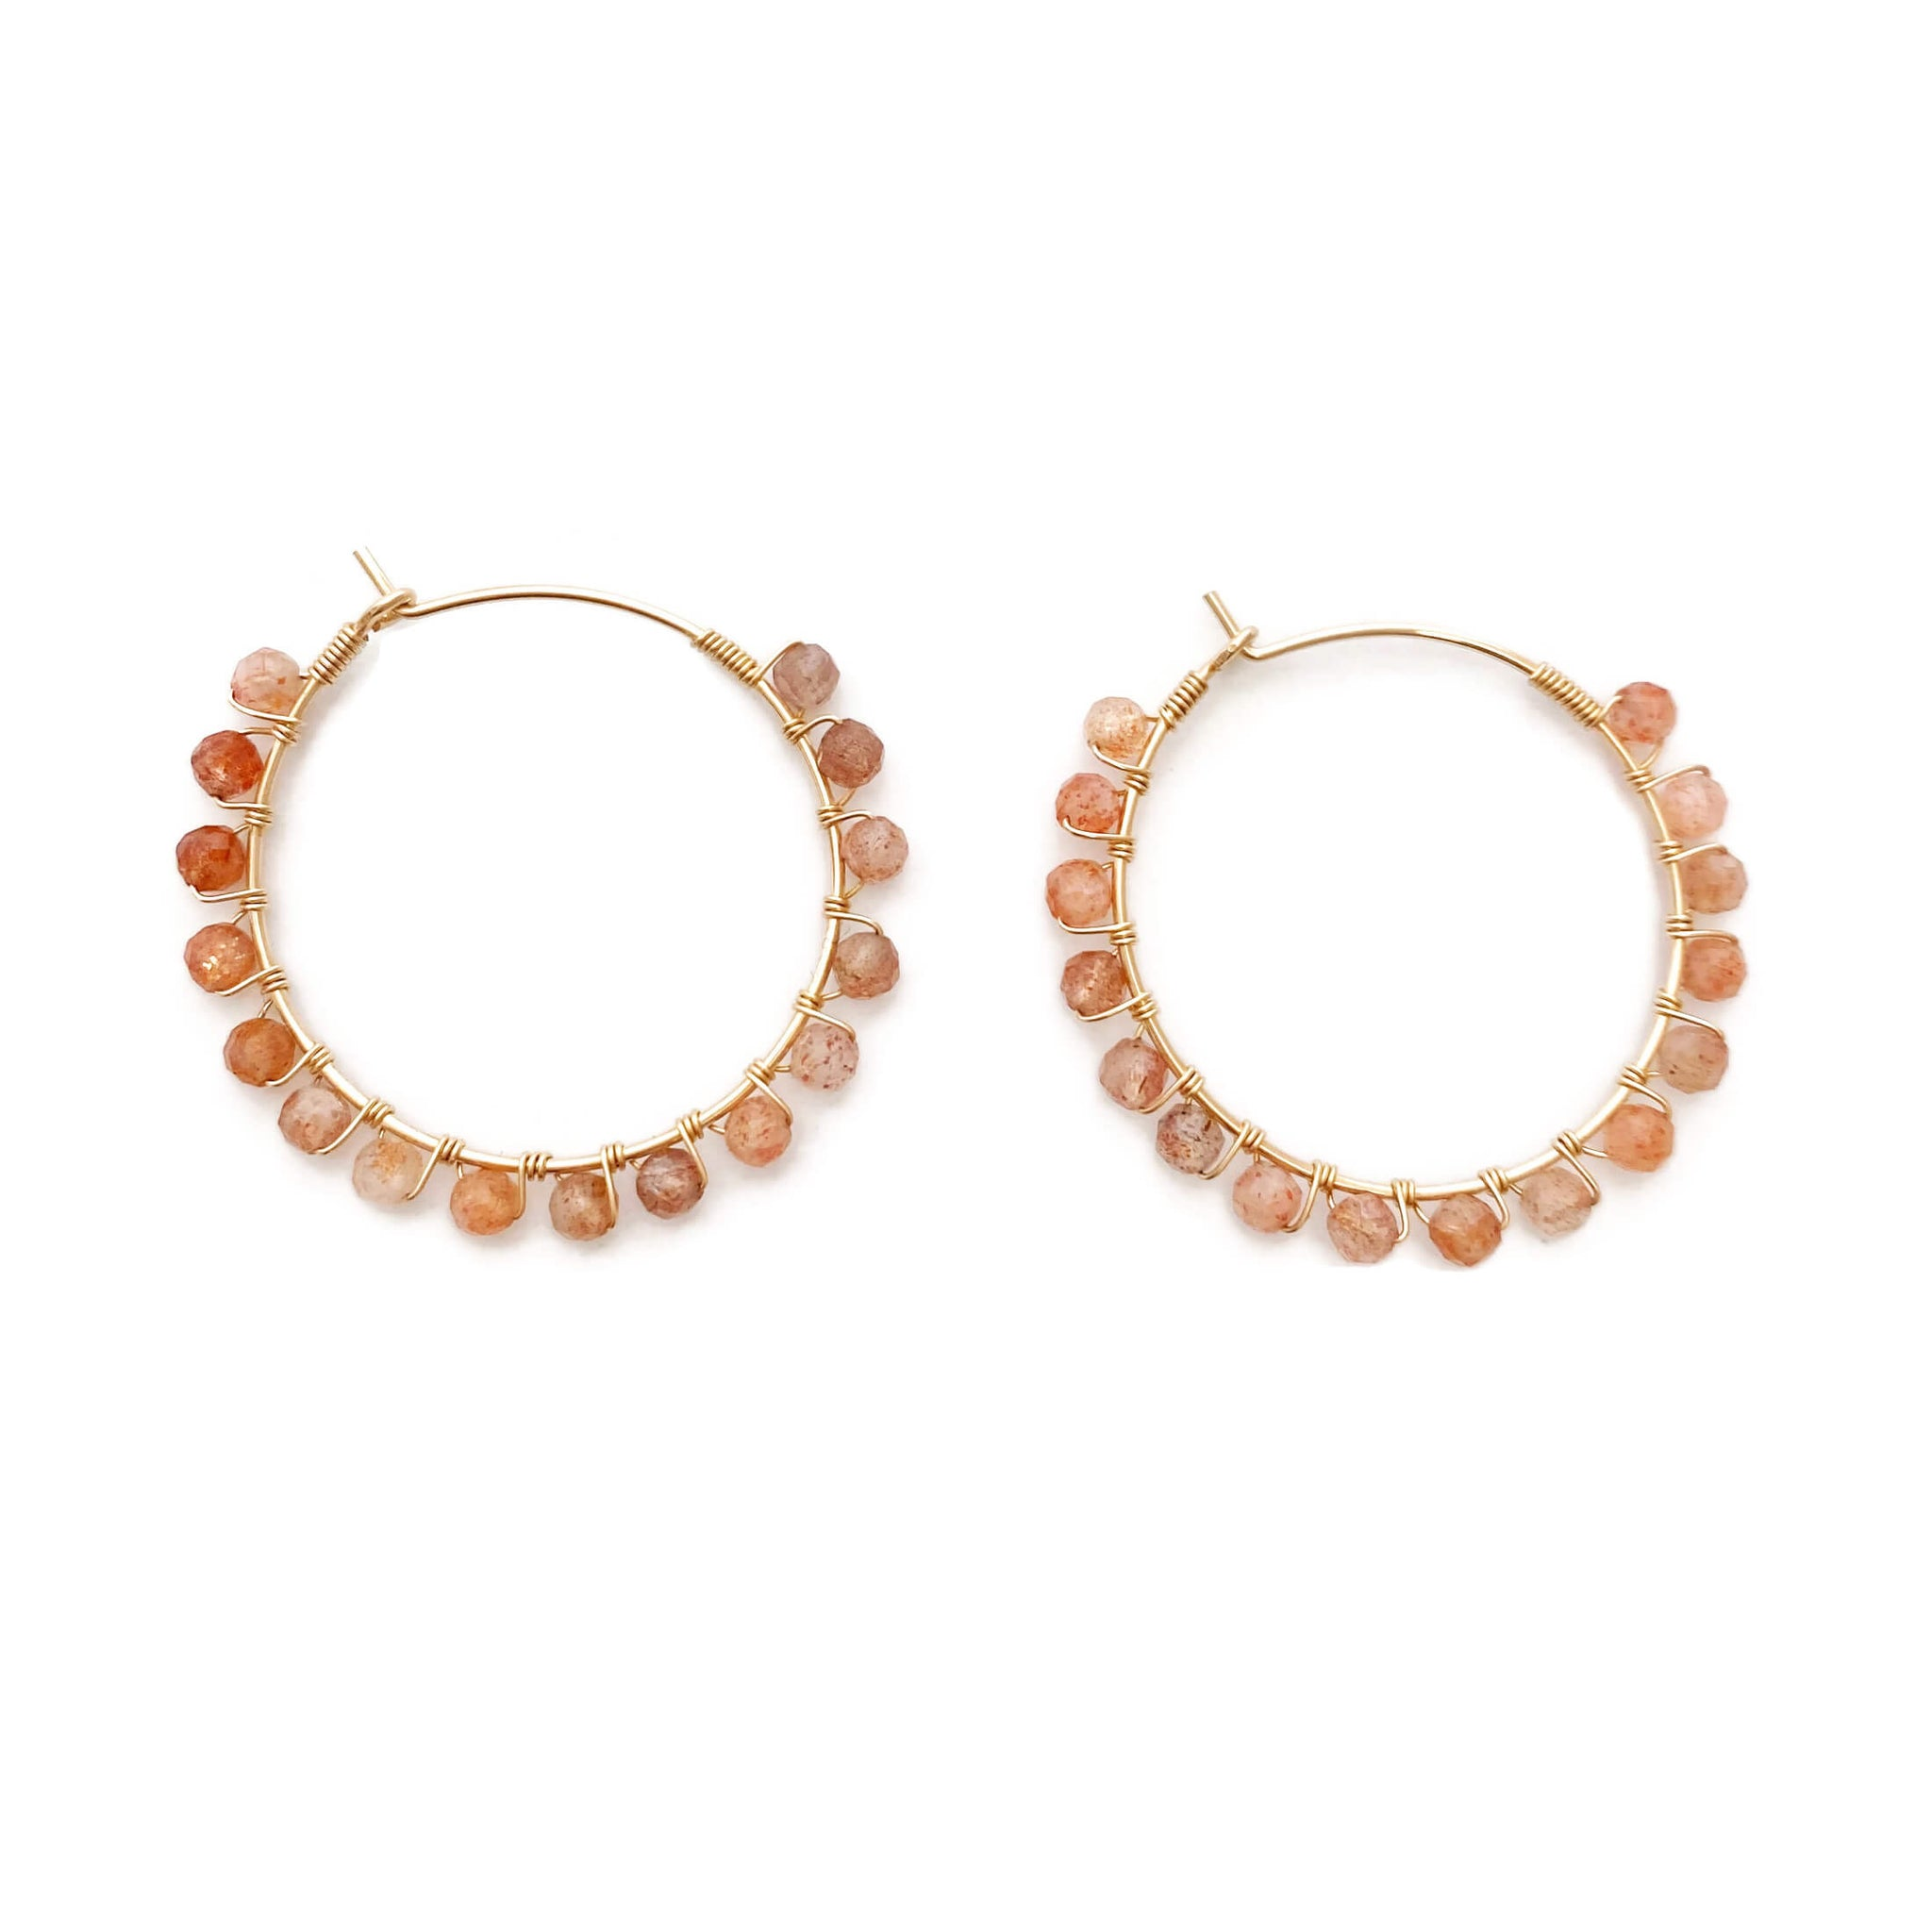 This Sunstone hoop earrings are versatile and playful. Sunstone is a leadership stone, it gives you strength and nurtures your leadership qualities.